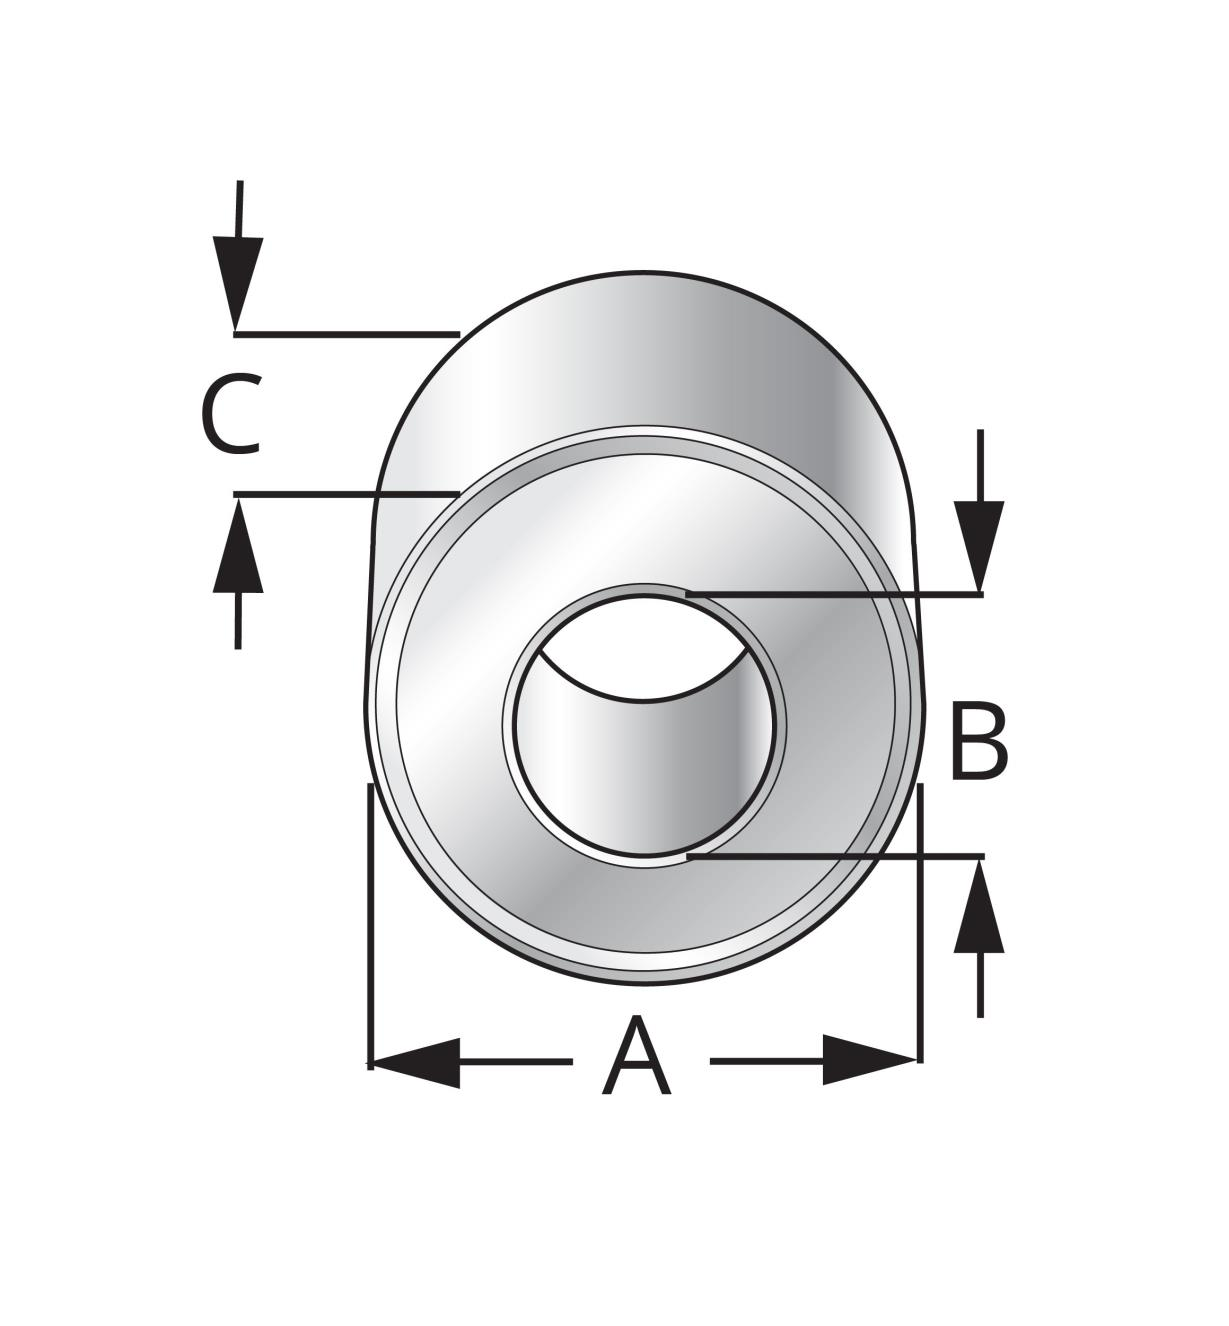 Diagram of Router Bit Ball Bearings showing measurements